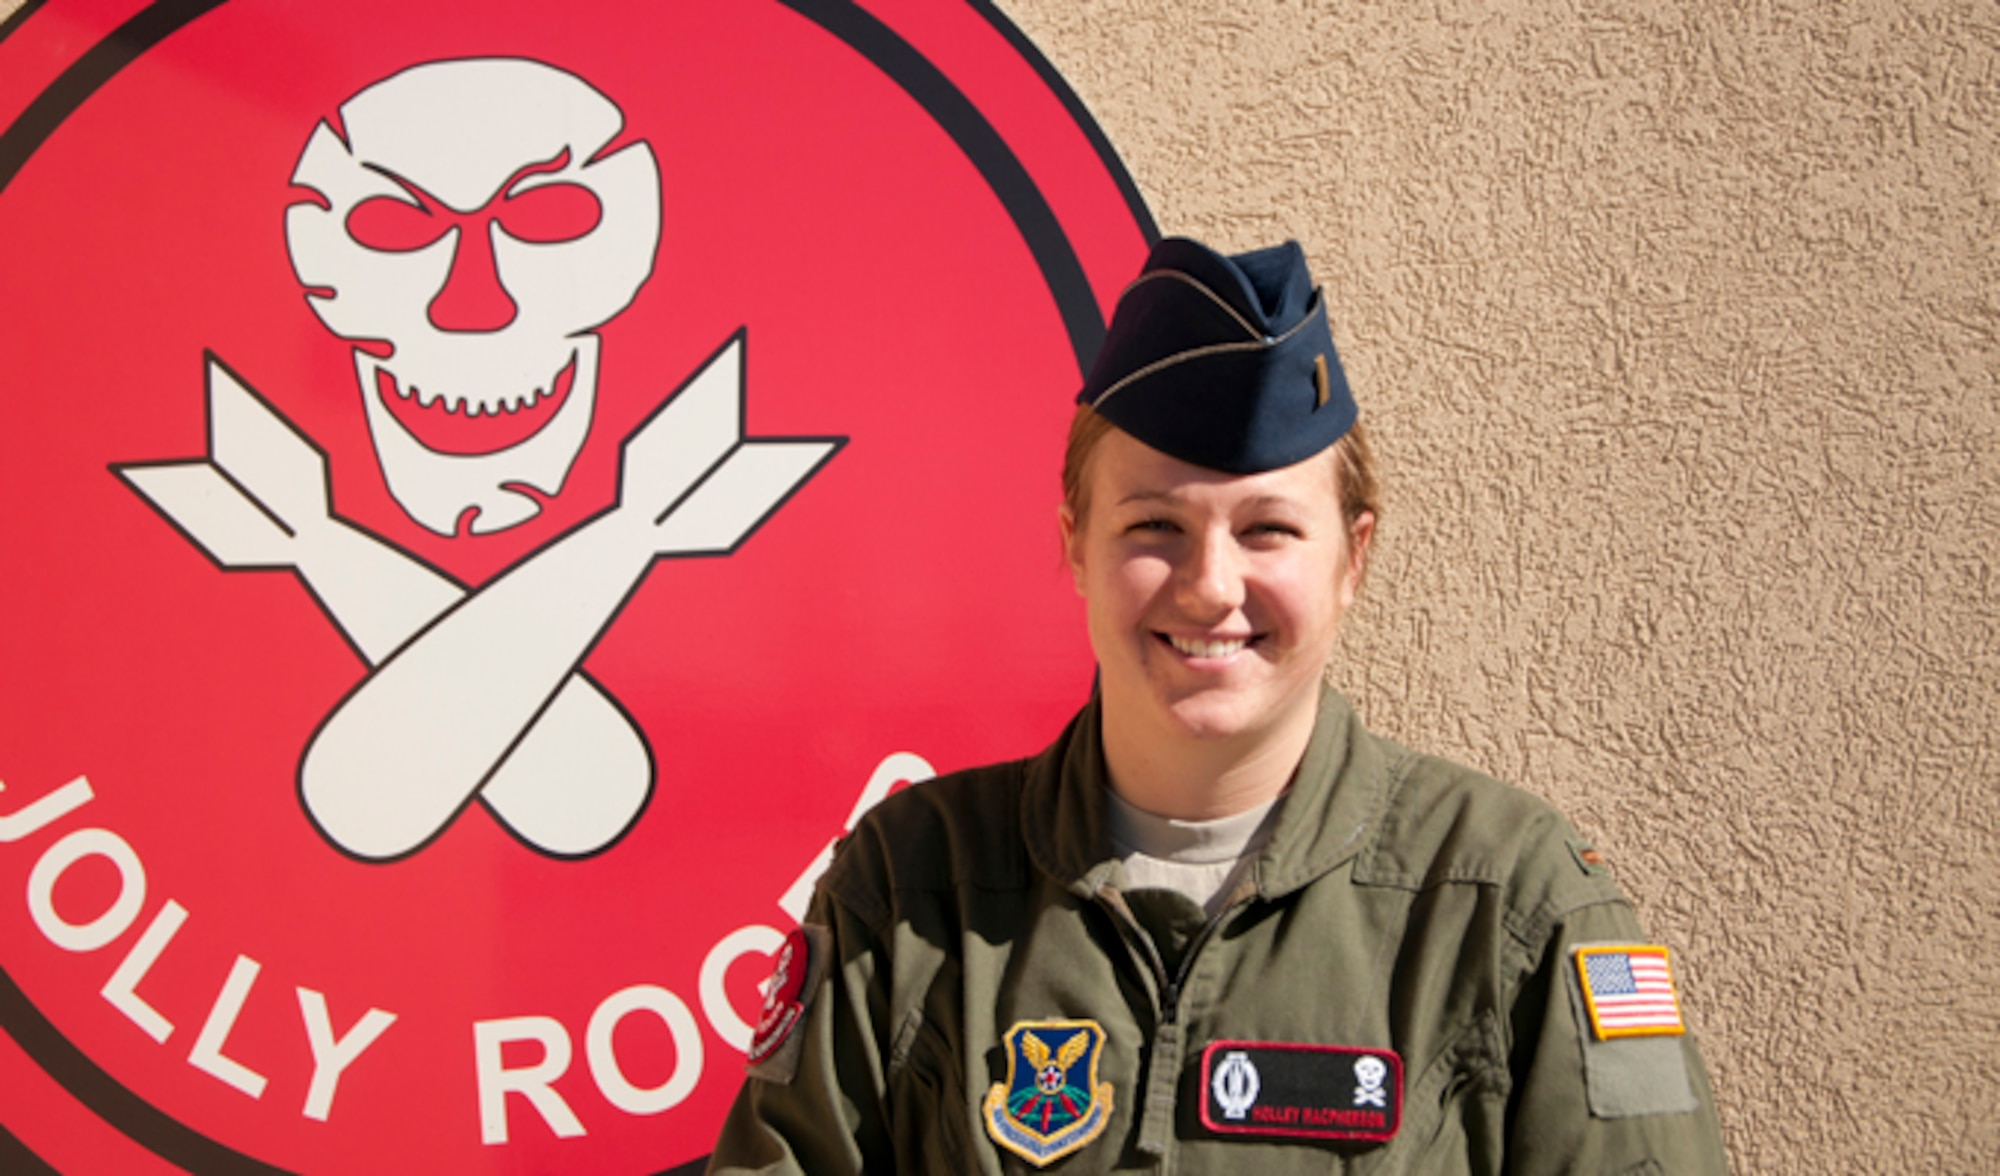 Second Lt. Holley Macpherson poses outside the 90th Operations Group Oct. 20, 2014 at F.W. Warren Air Force Base, Wyo. Recently, Macpherson pulled her first alert in a launch control center in the F.E. Warren AFB Missile Complex, where she and a crew commander monitored the ICBM mission in their flight area.320th Missile Squadron deputy missile combat crew commander. (U.S. Air Force photo/Senior Airman Jason Wiese)